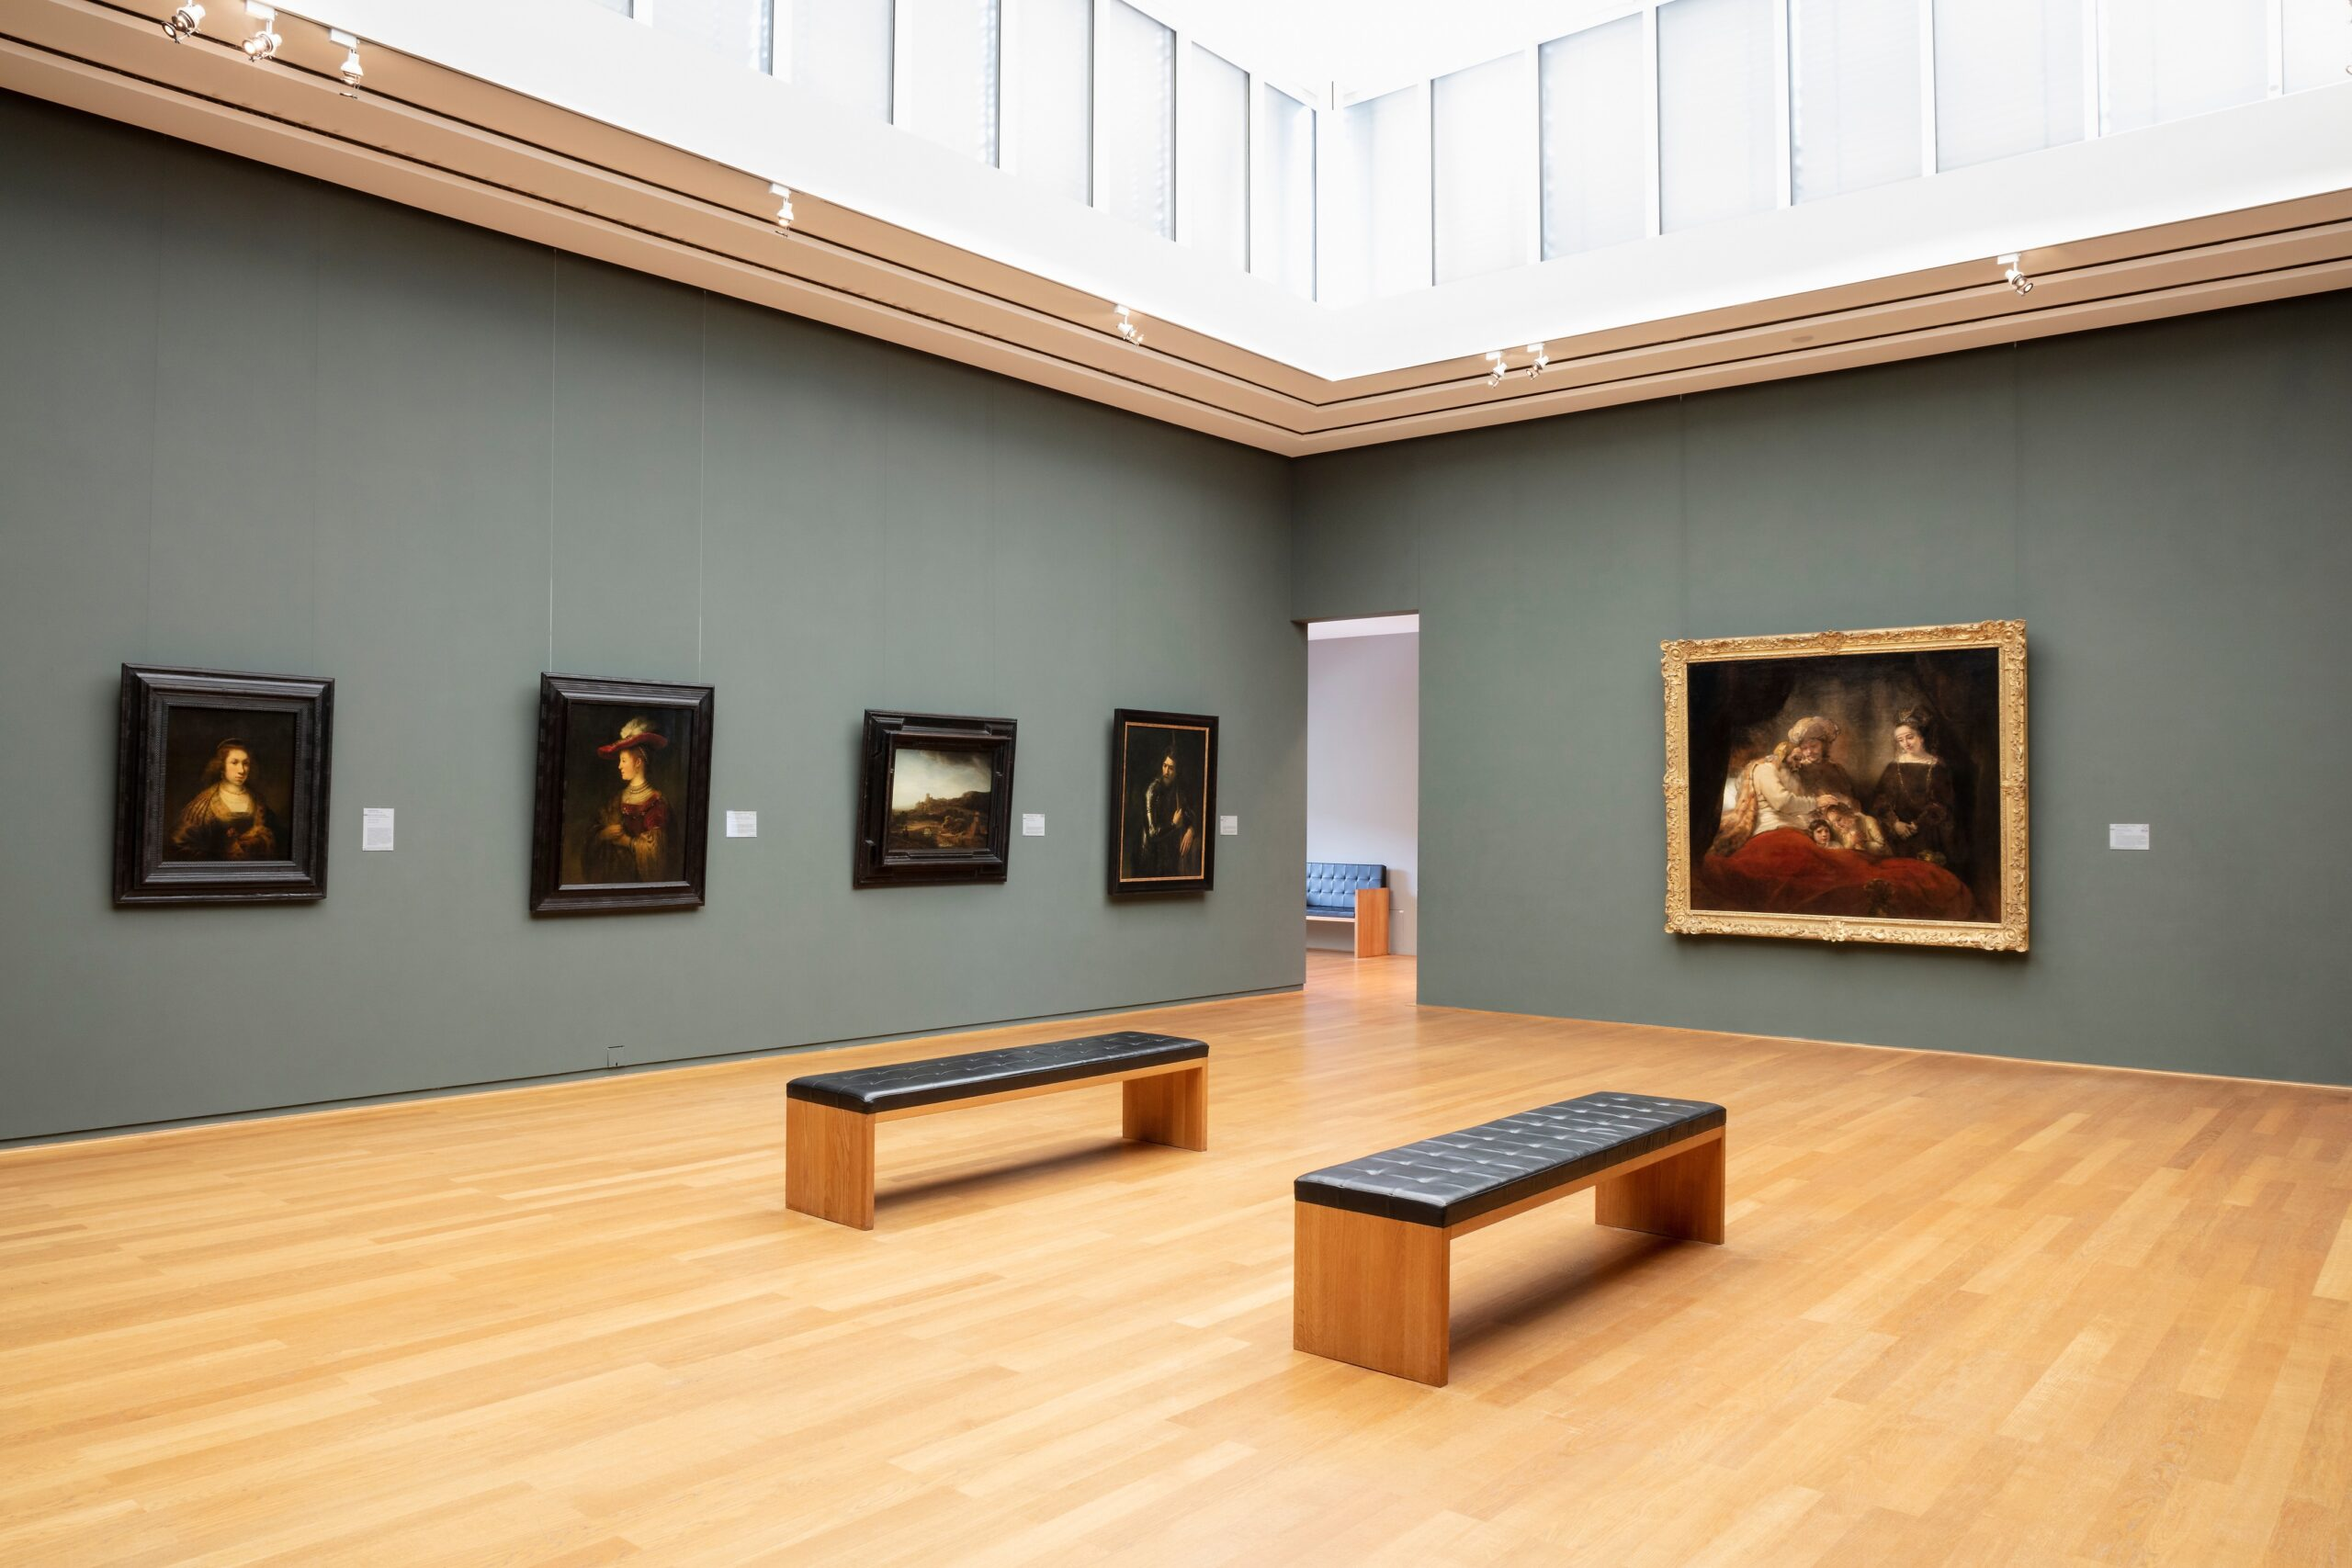 The Rembrandt Room in the Gemäldegalerie Alte Meister